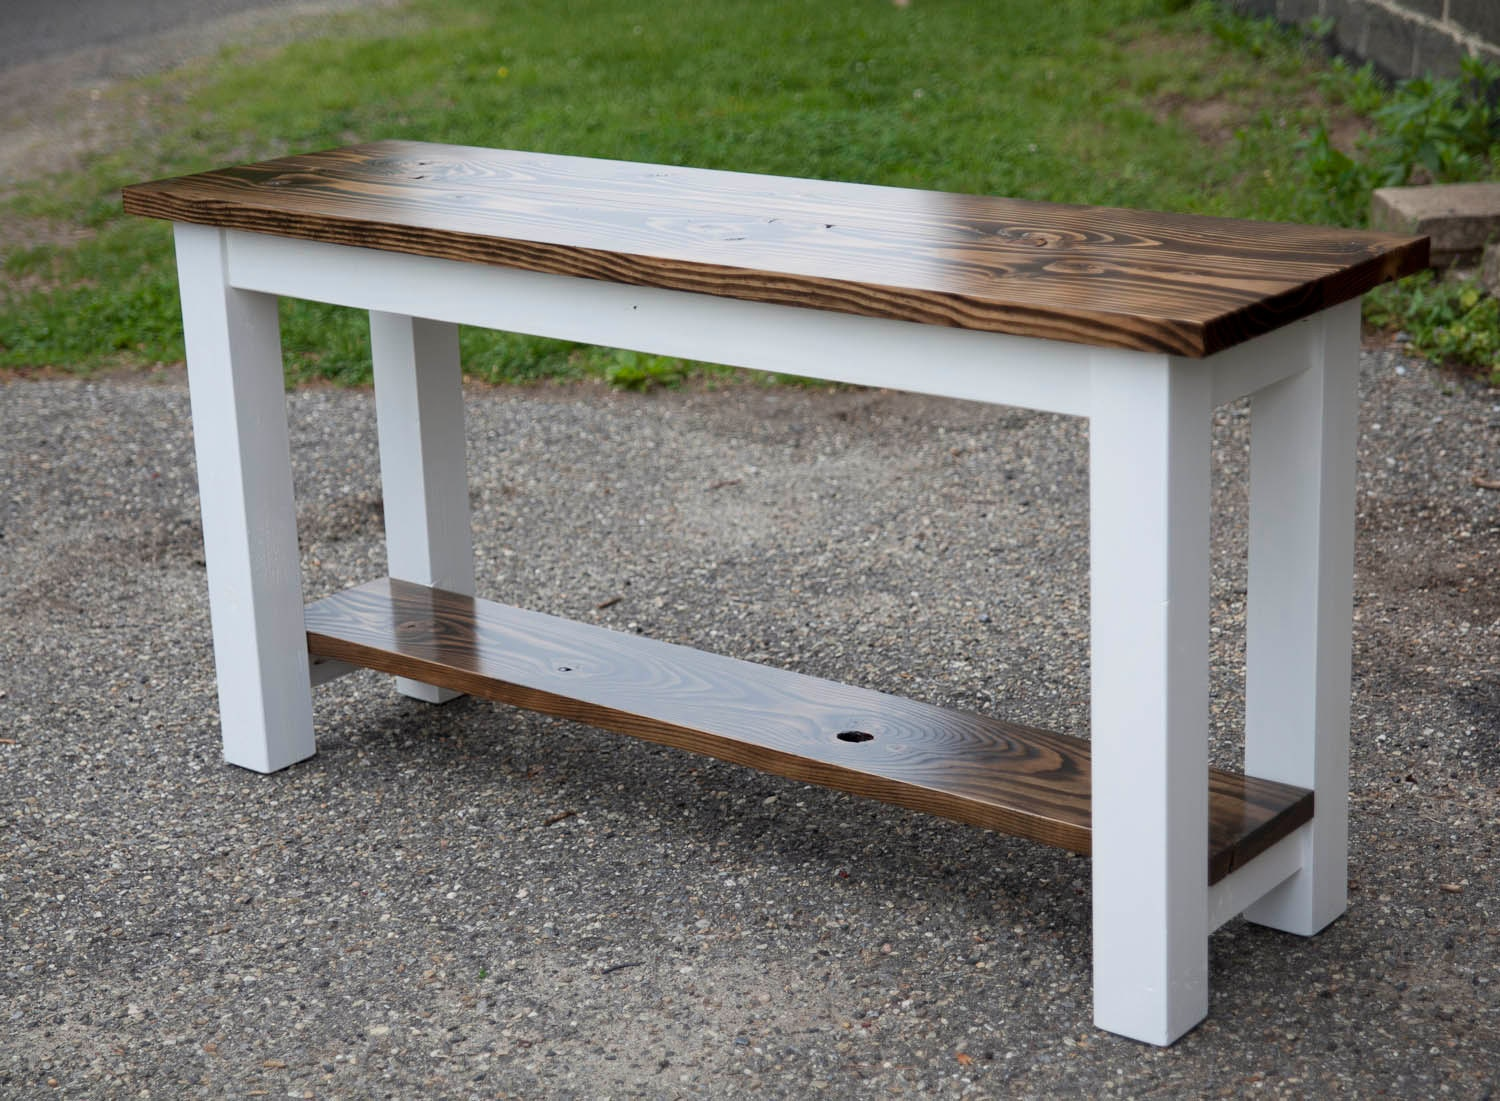 How to make a sofa table from 1 x 6 lumber -  Zoom